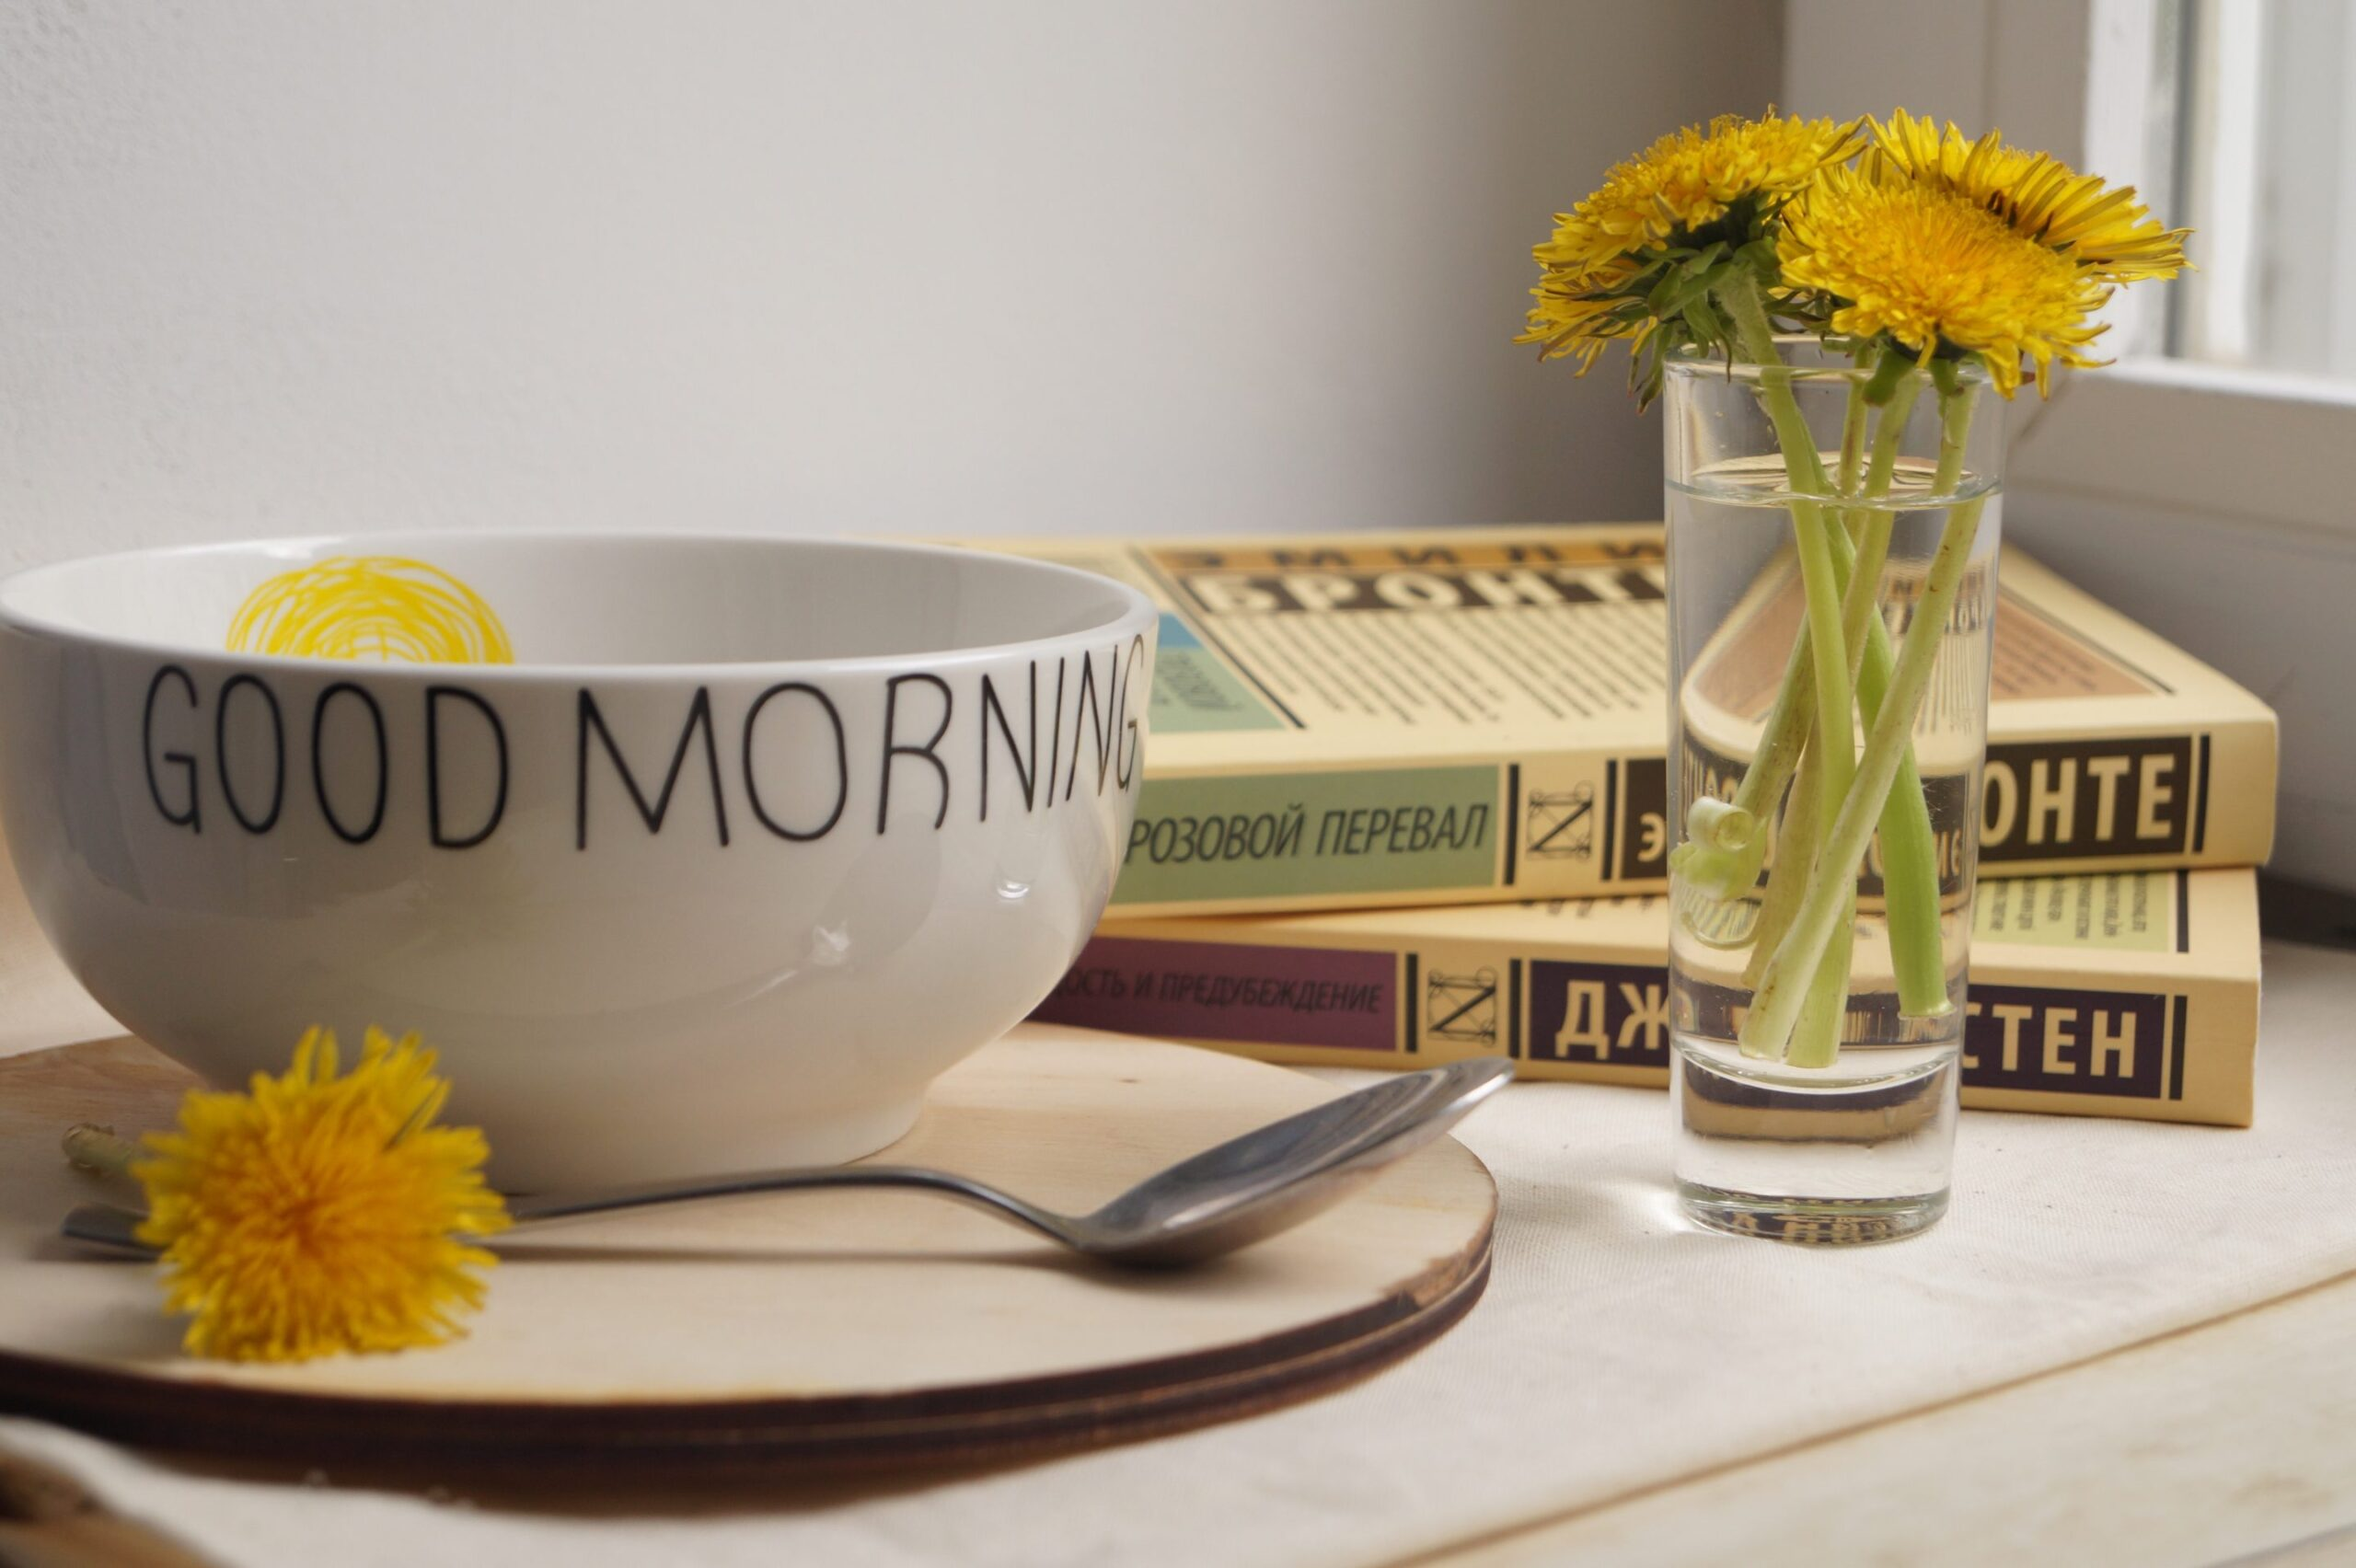 Healthy Morning Routine Tips to Kick Off Your Day